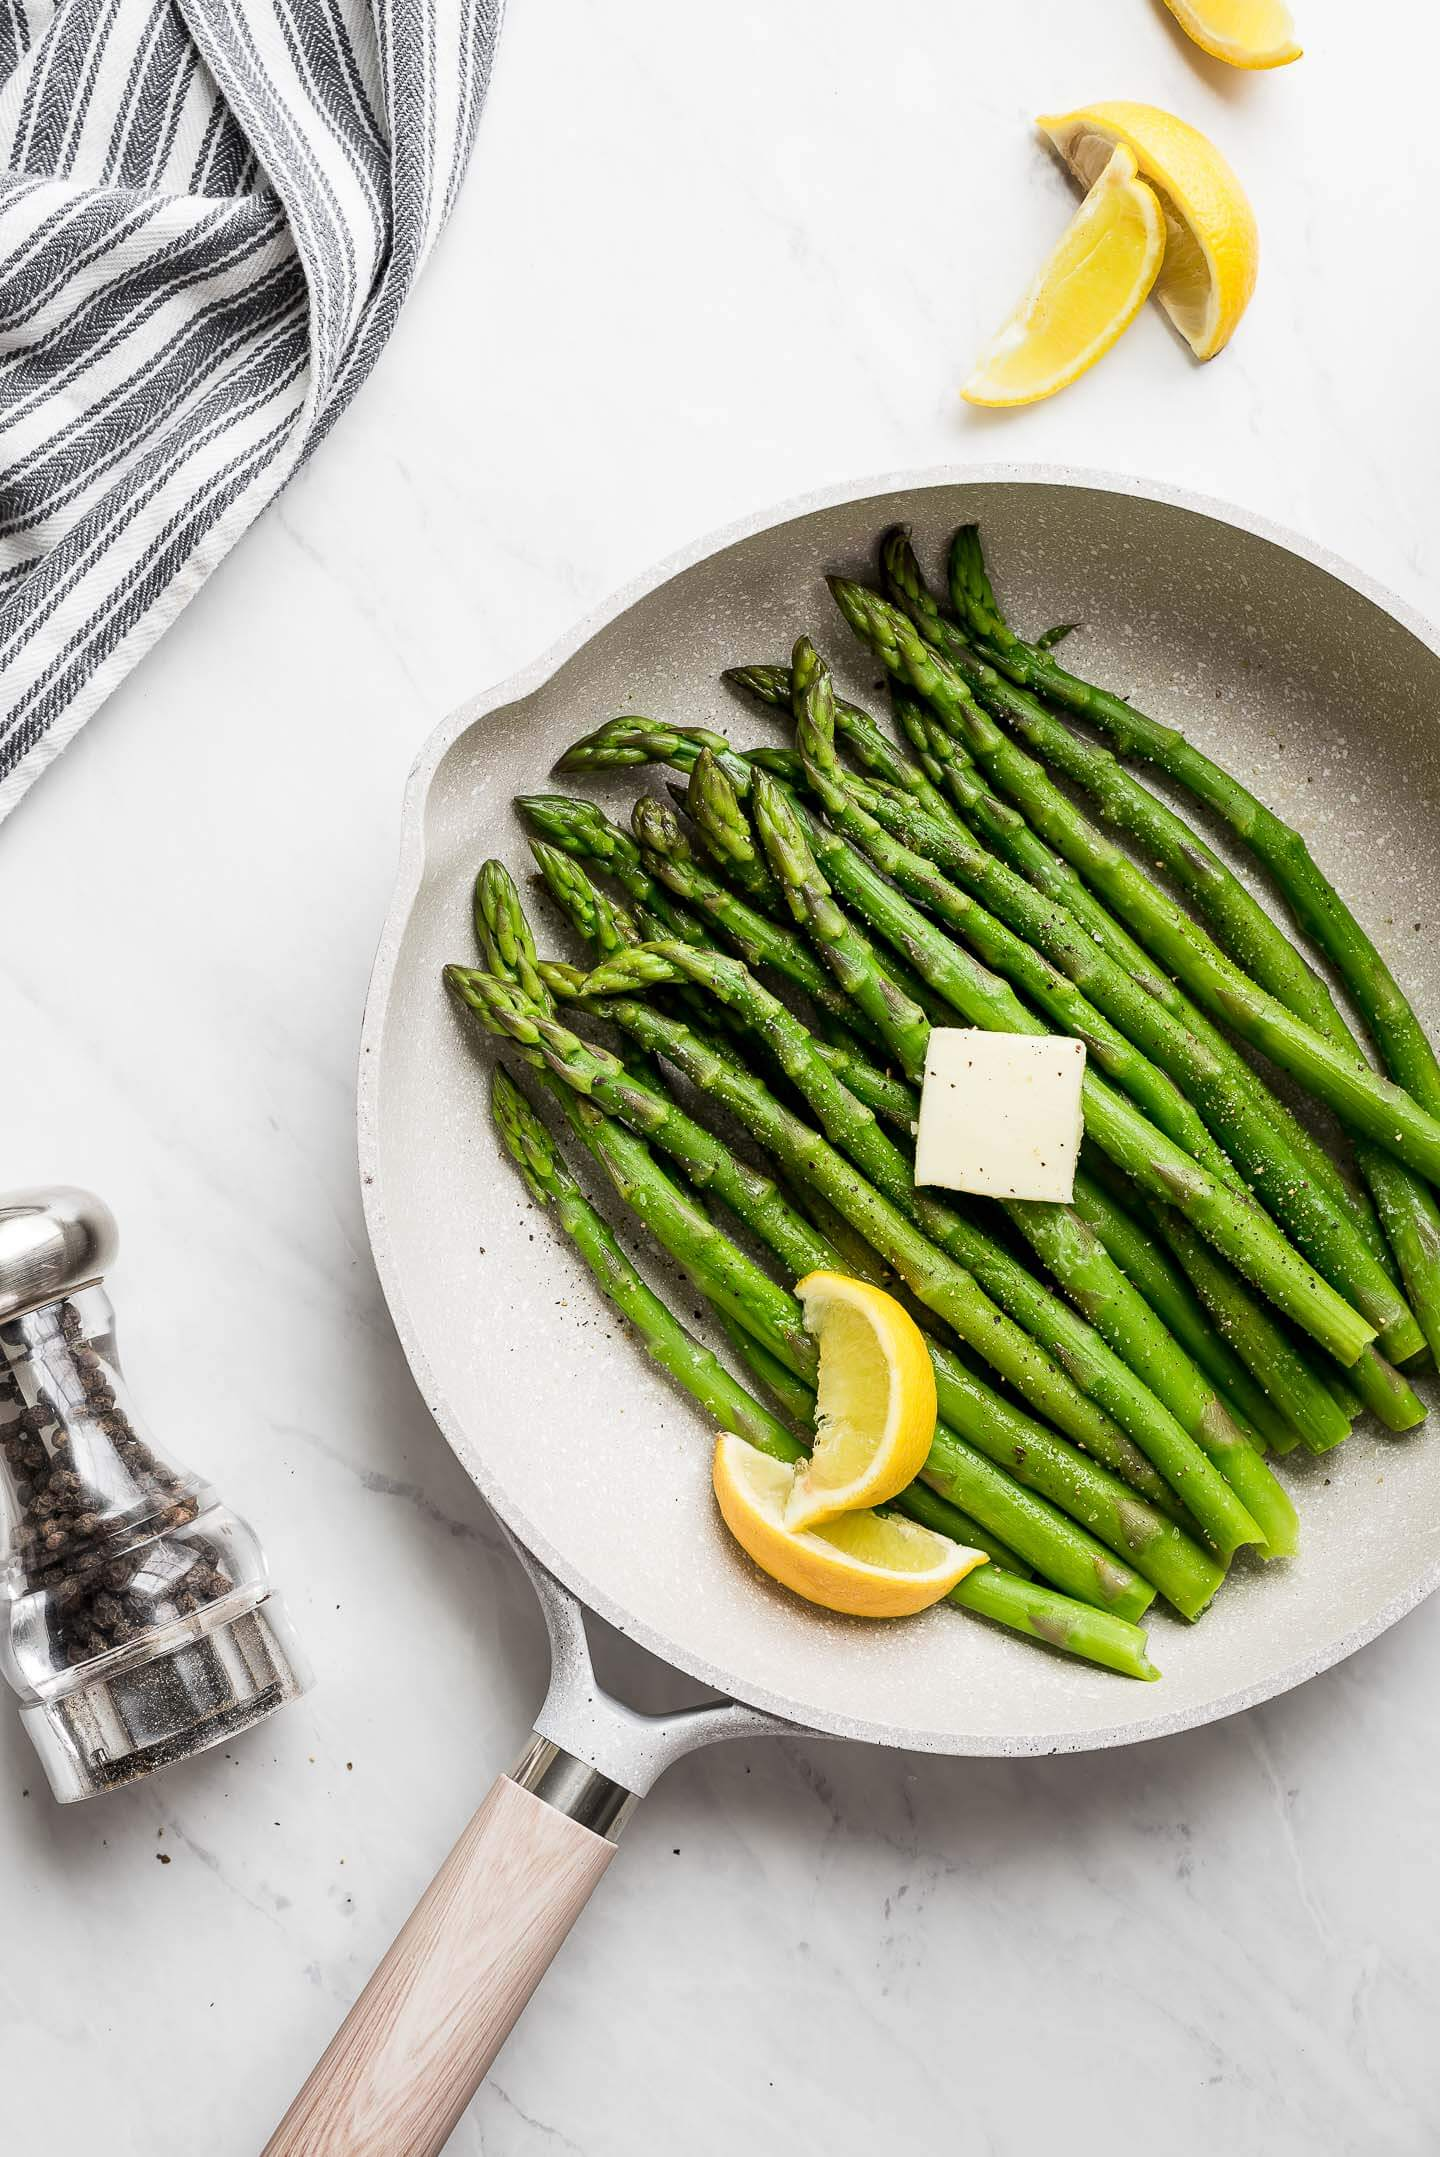 Stovetop asparagus in a skillet, seasoned with salt and pepper, a pat of butter, and lemon wedges.